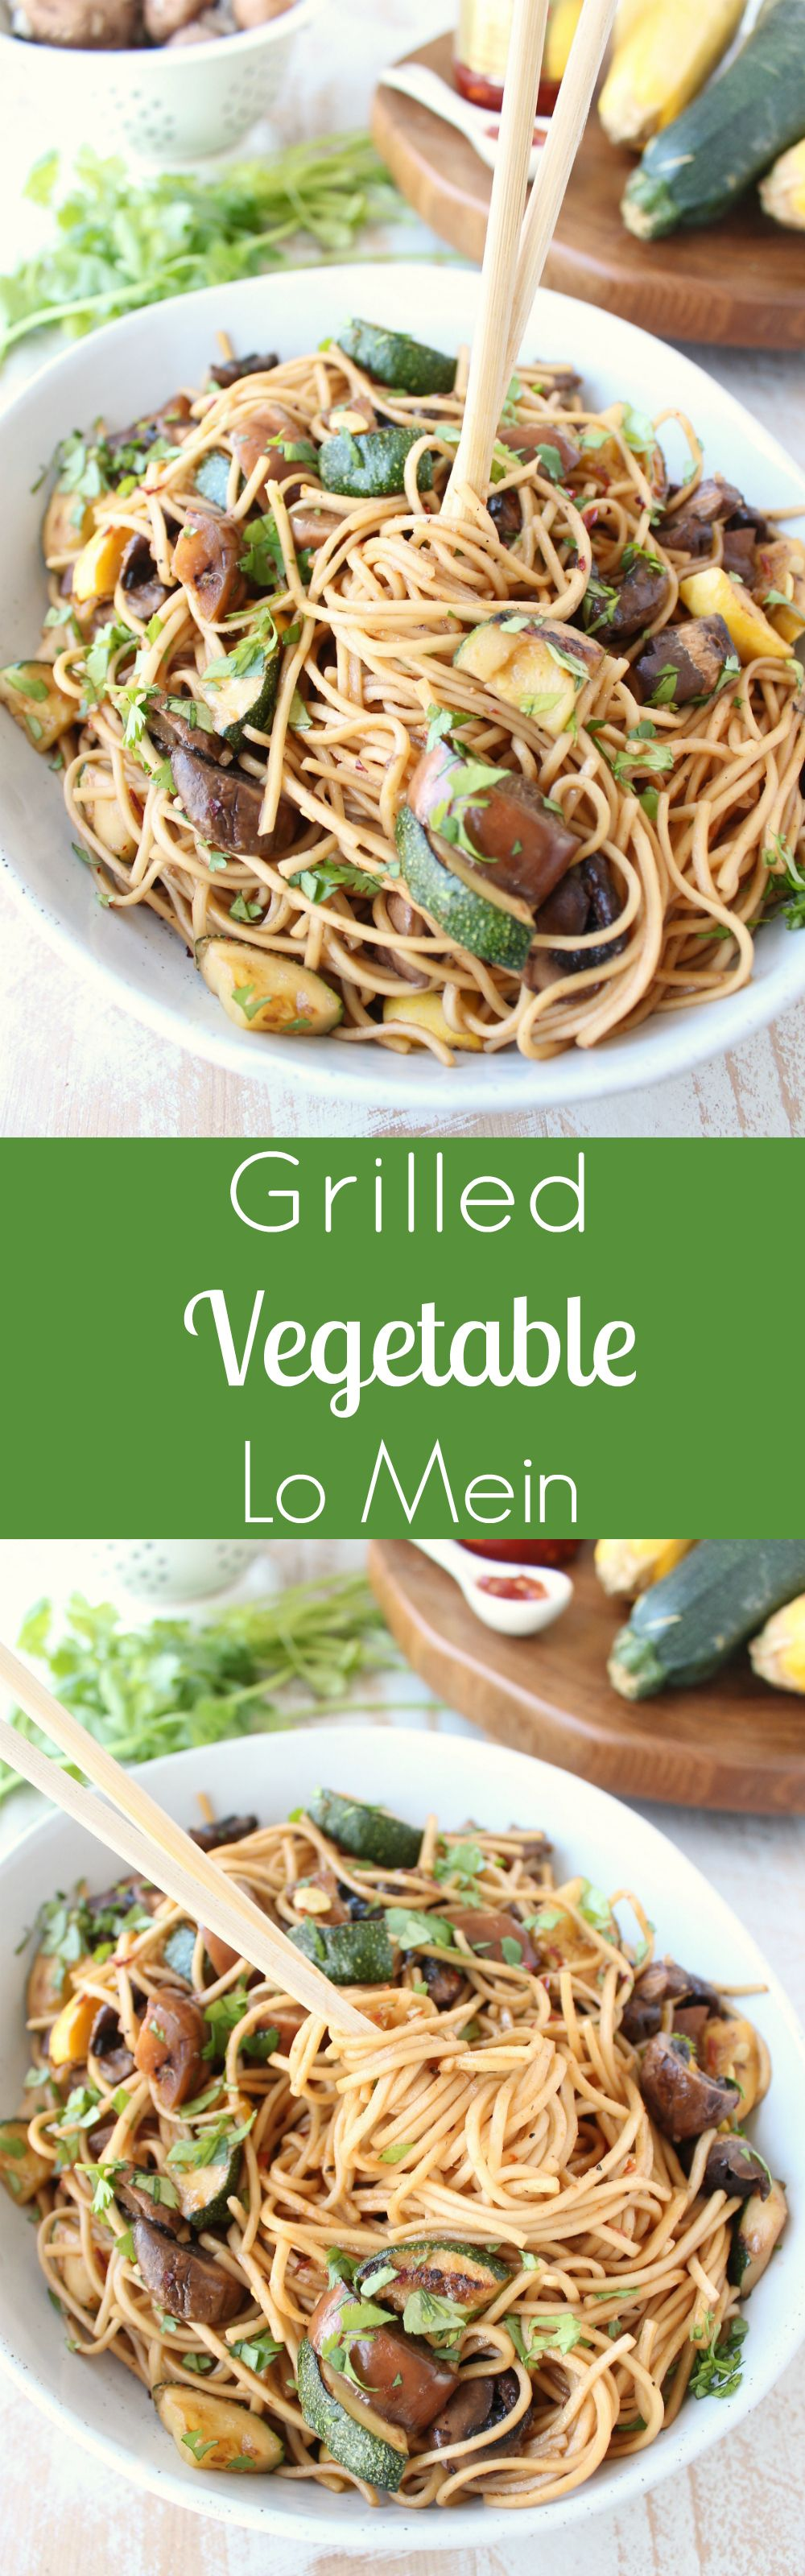 Grilled Vegetable Lo Mein - a delicious 20 minute vegetarian summer noodle bowl recipe!